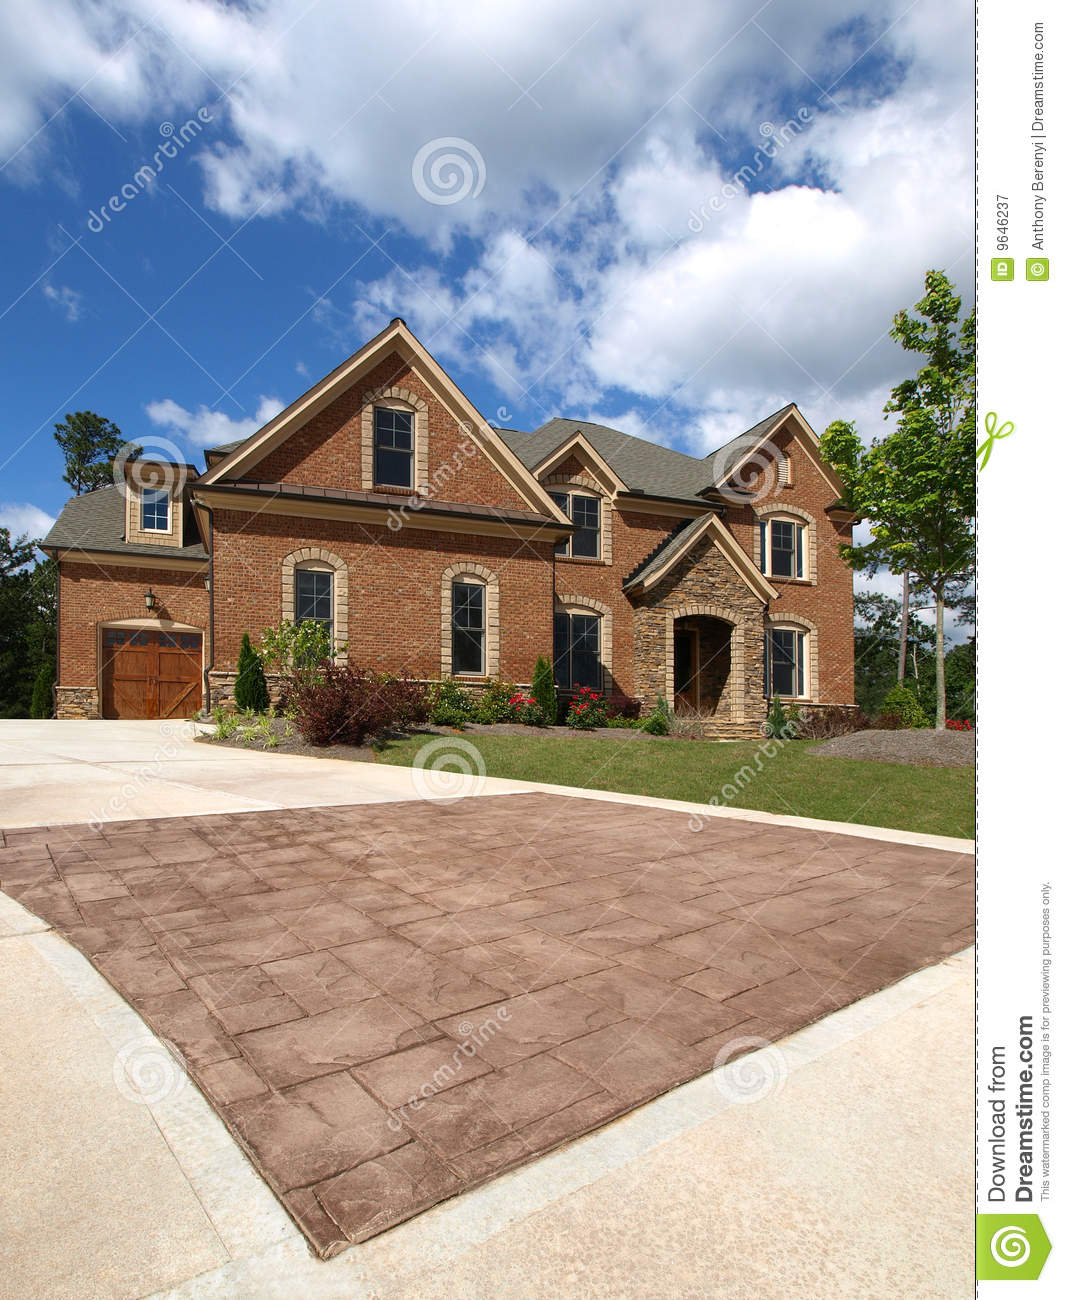 Luxury model home exterior stone driveway royalty free for Model home exterior photos